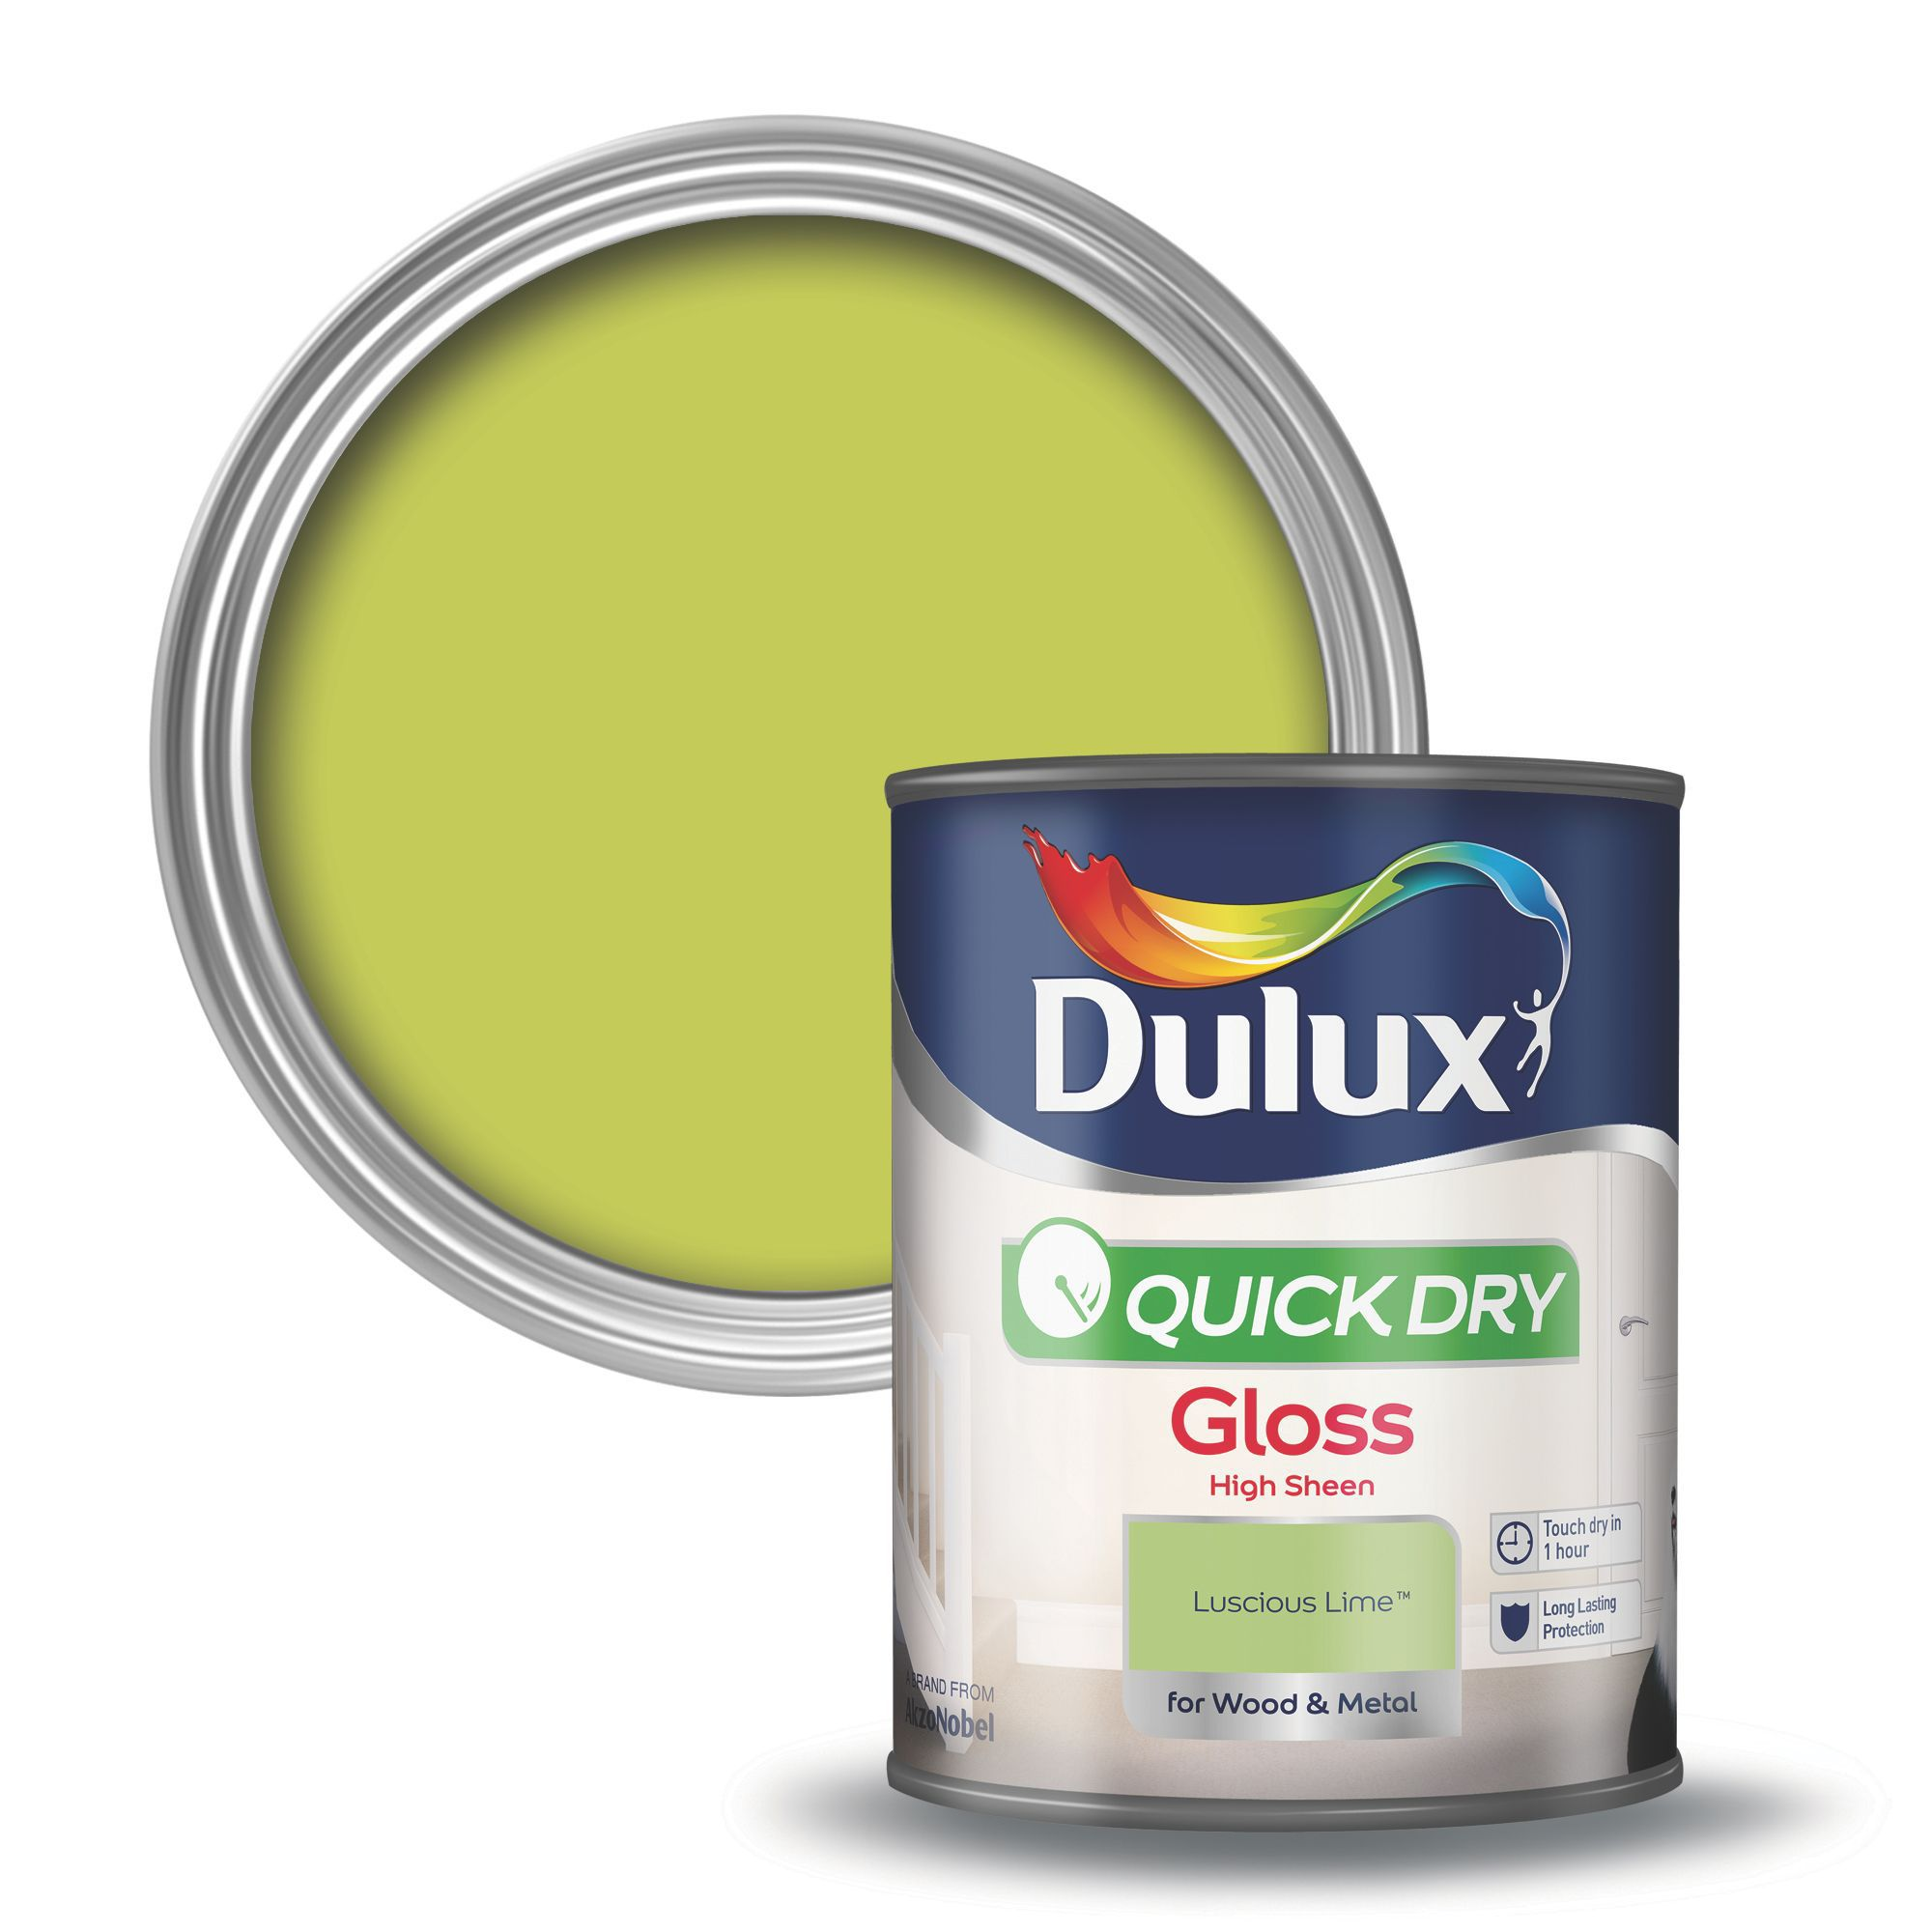 Dulux Paint Gloss Quick Dry